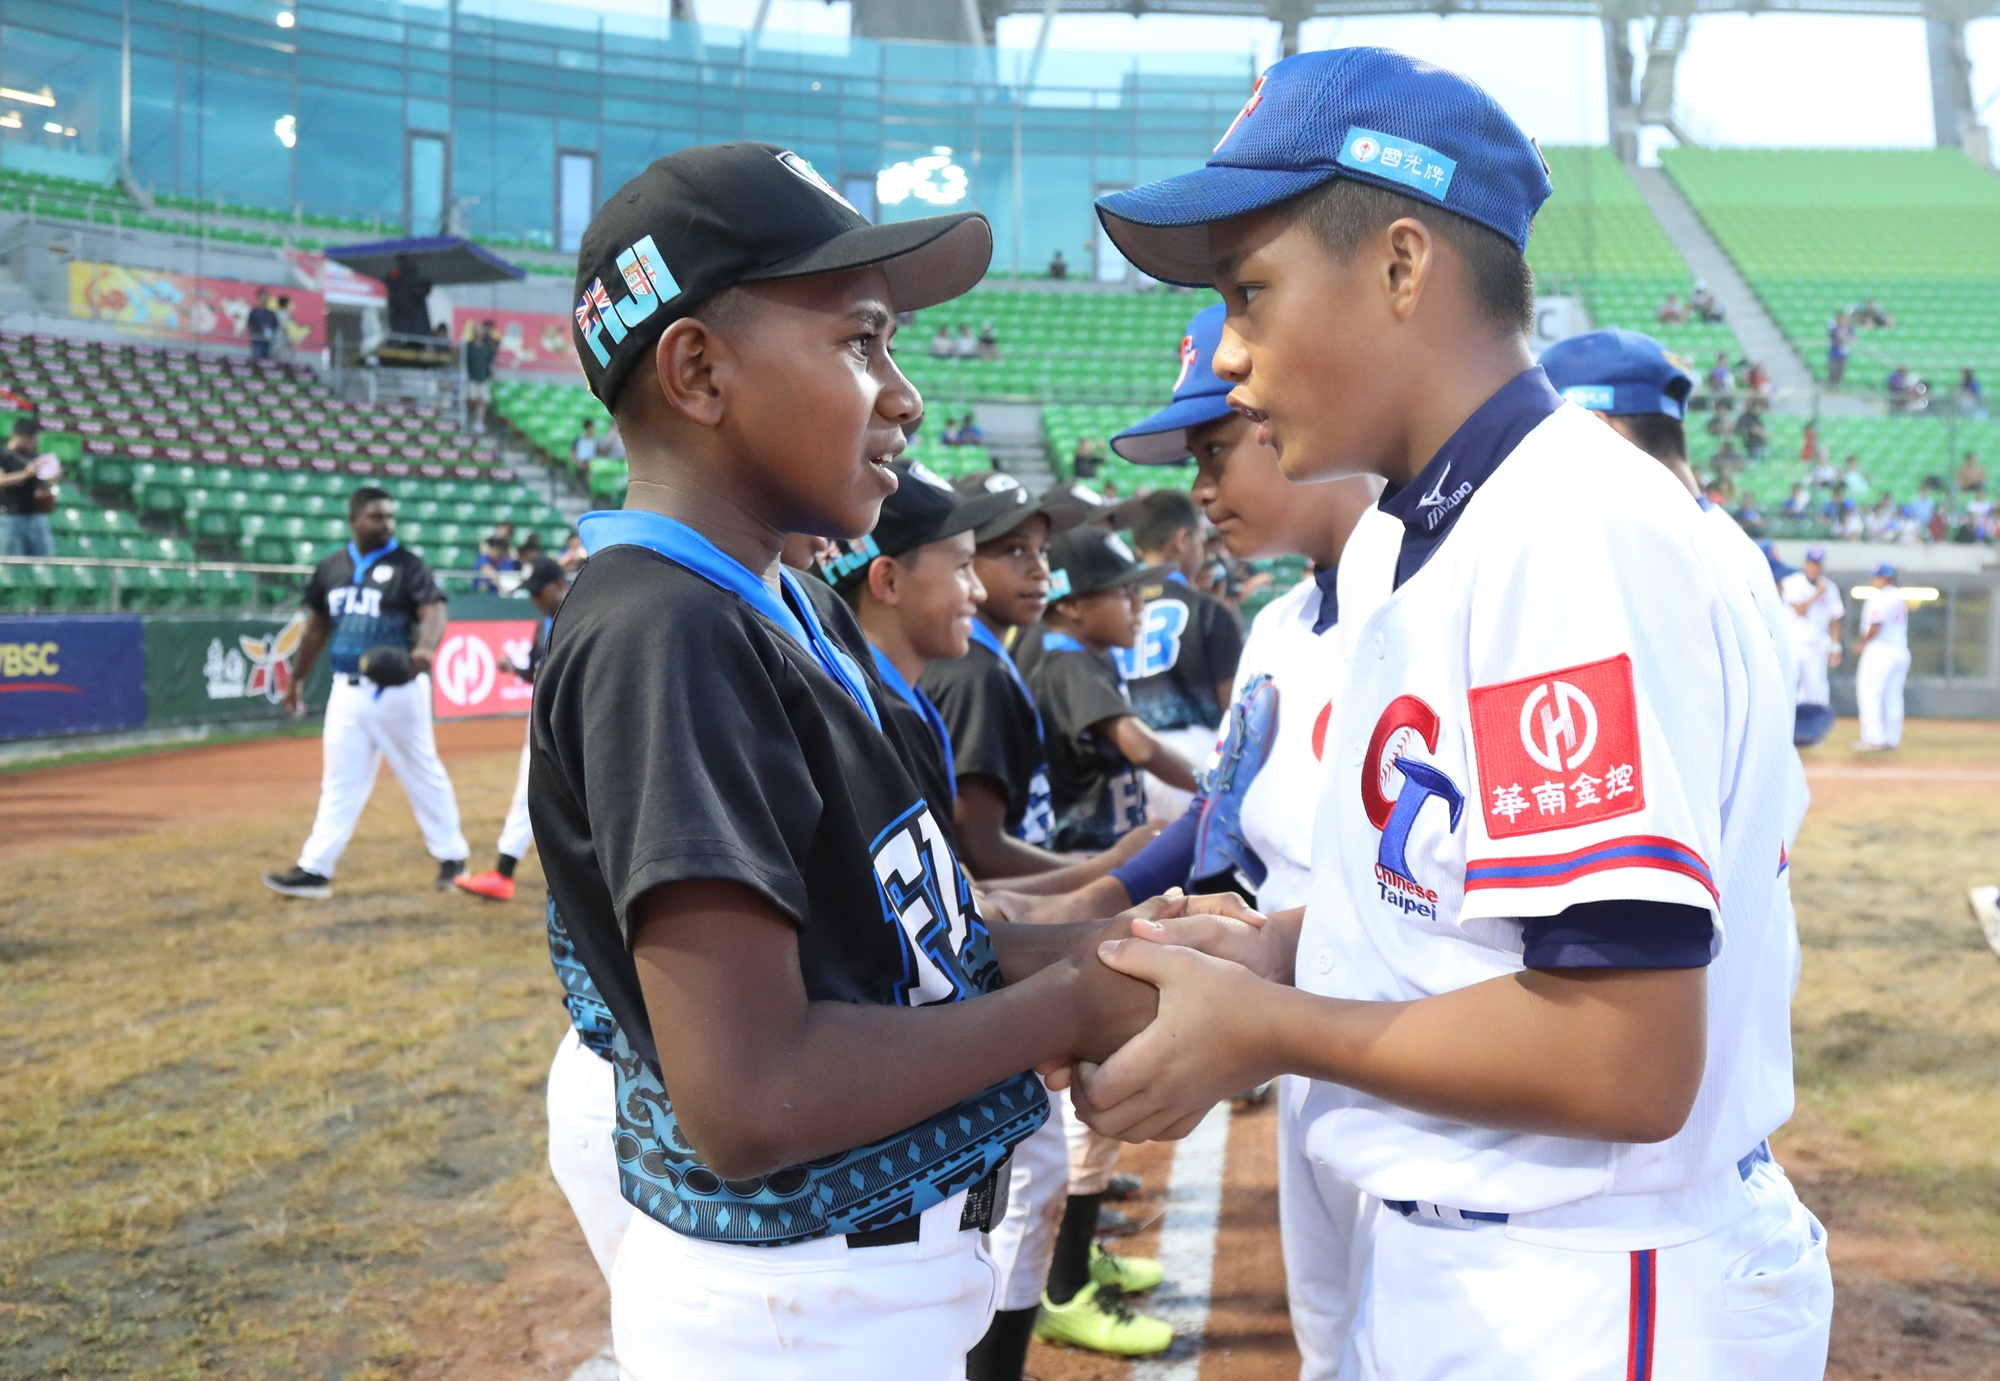 Despite the gap in the final score, there was friendship between Chinese Taipei and Fiji